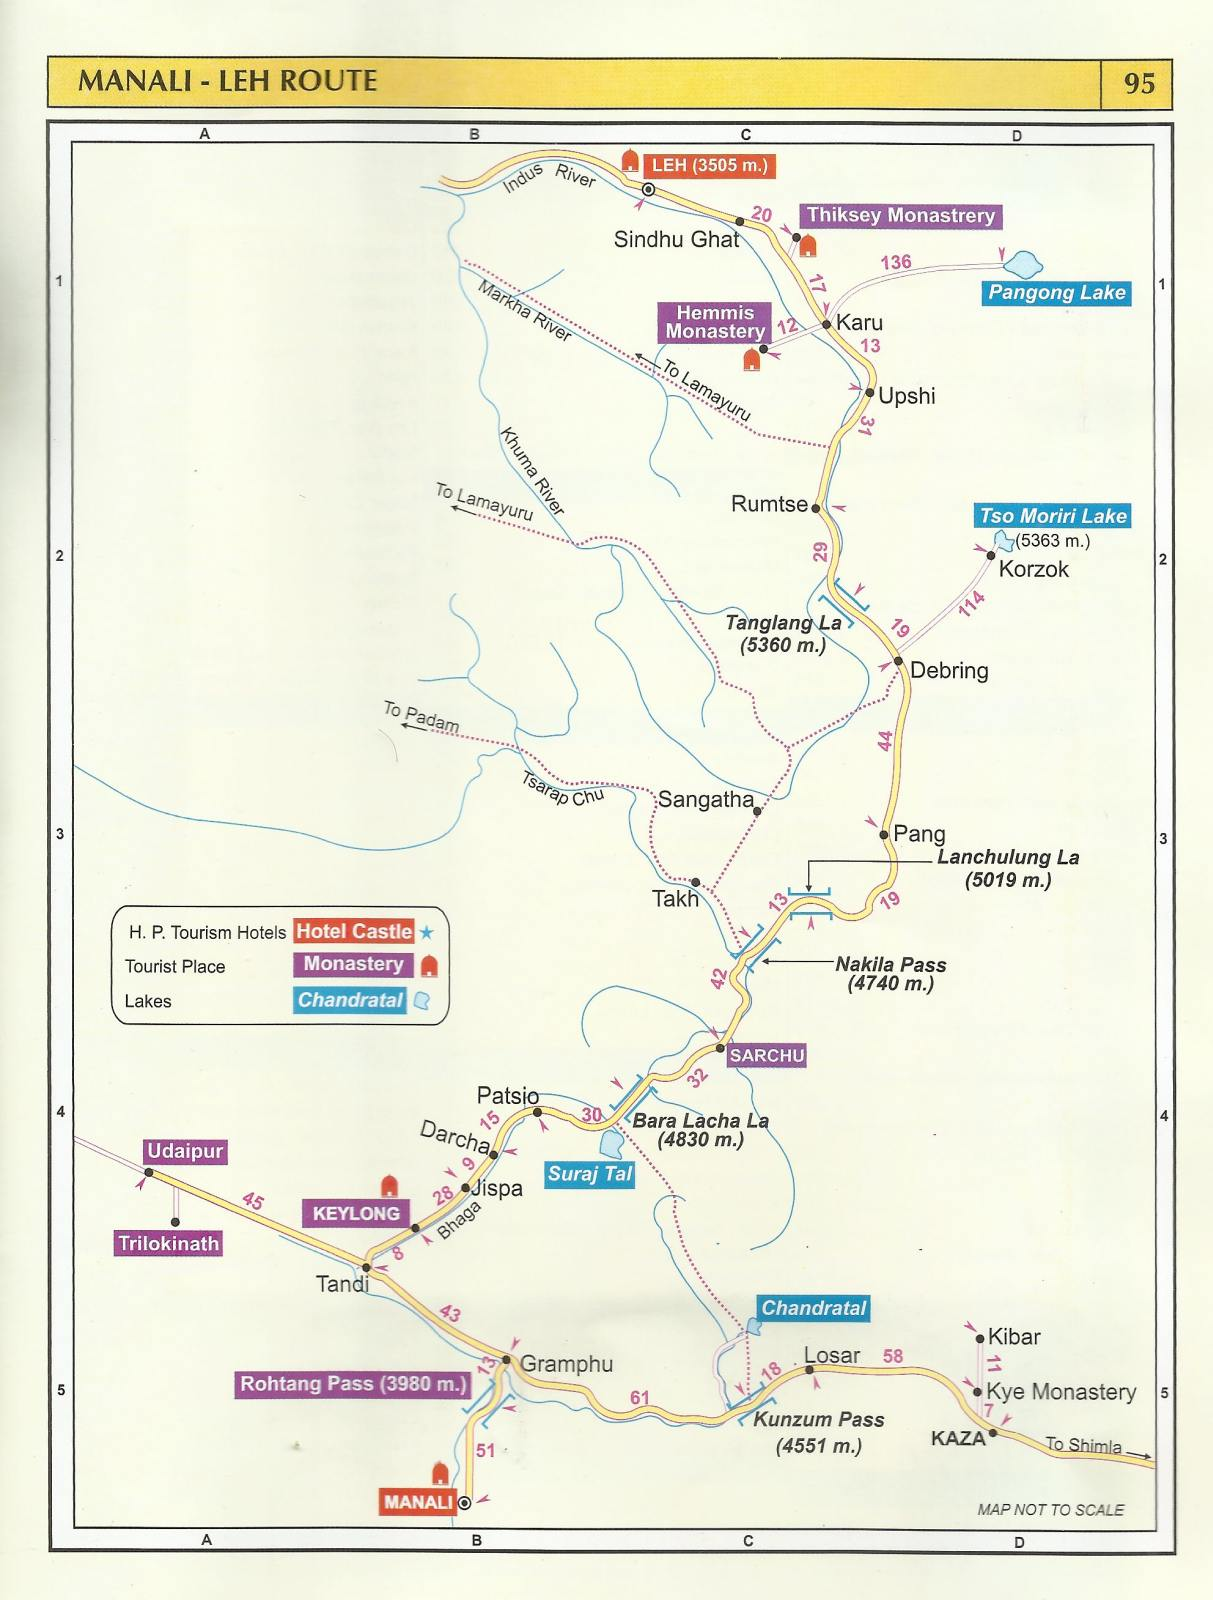 tourist map manali leh route – himachal pradesh travel guide - tourist map manali leh route